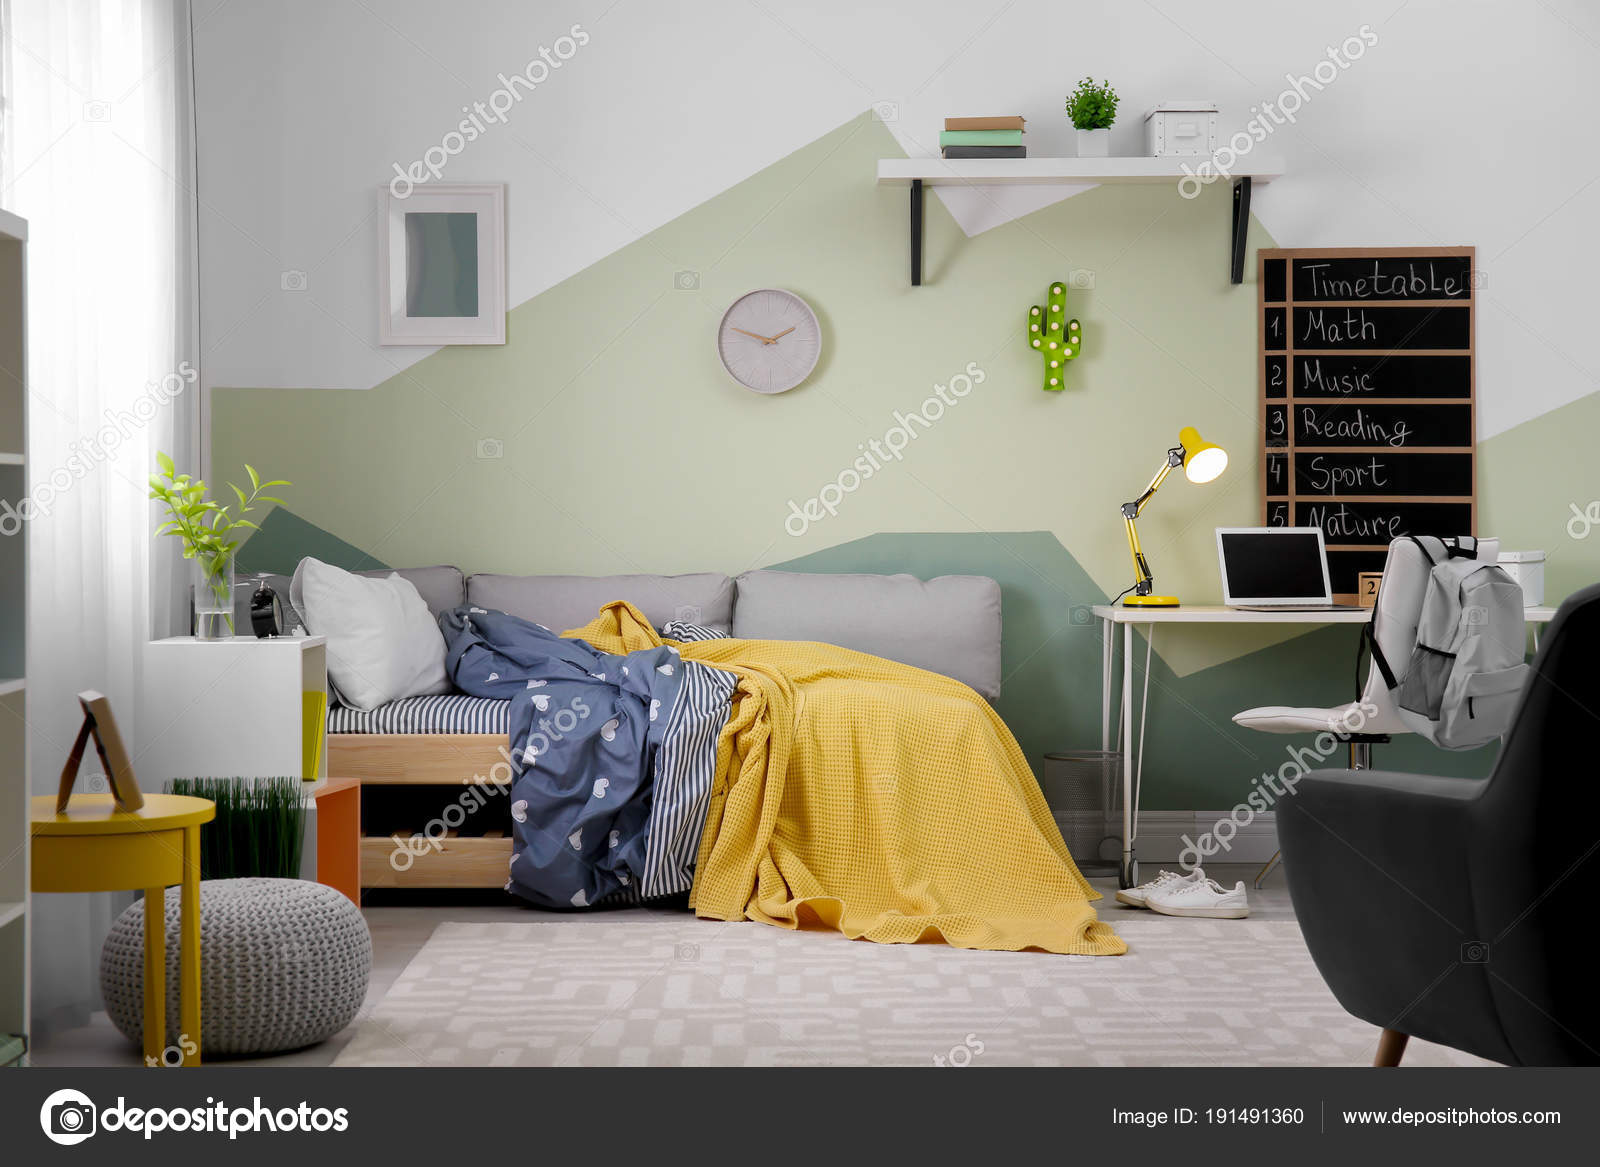 Moderne kind kamer interieur met comfortabel bed u stockfoto